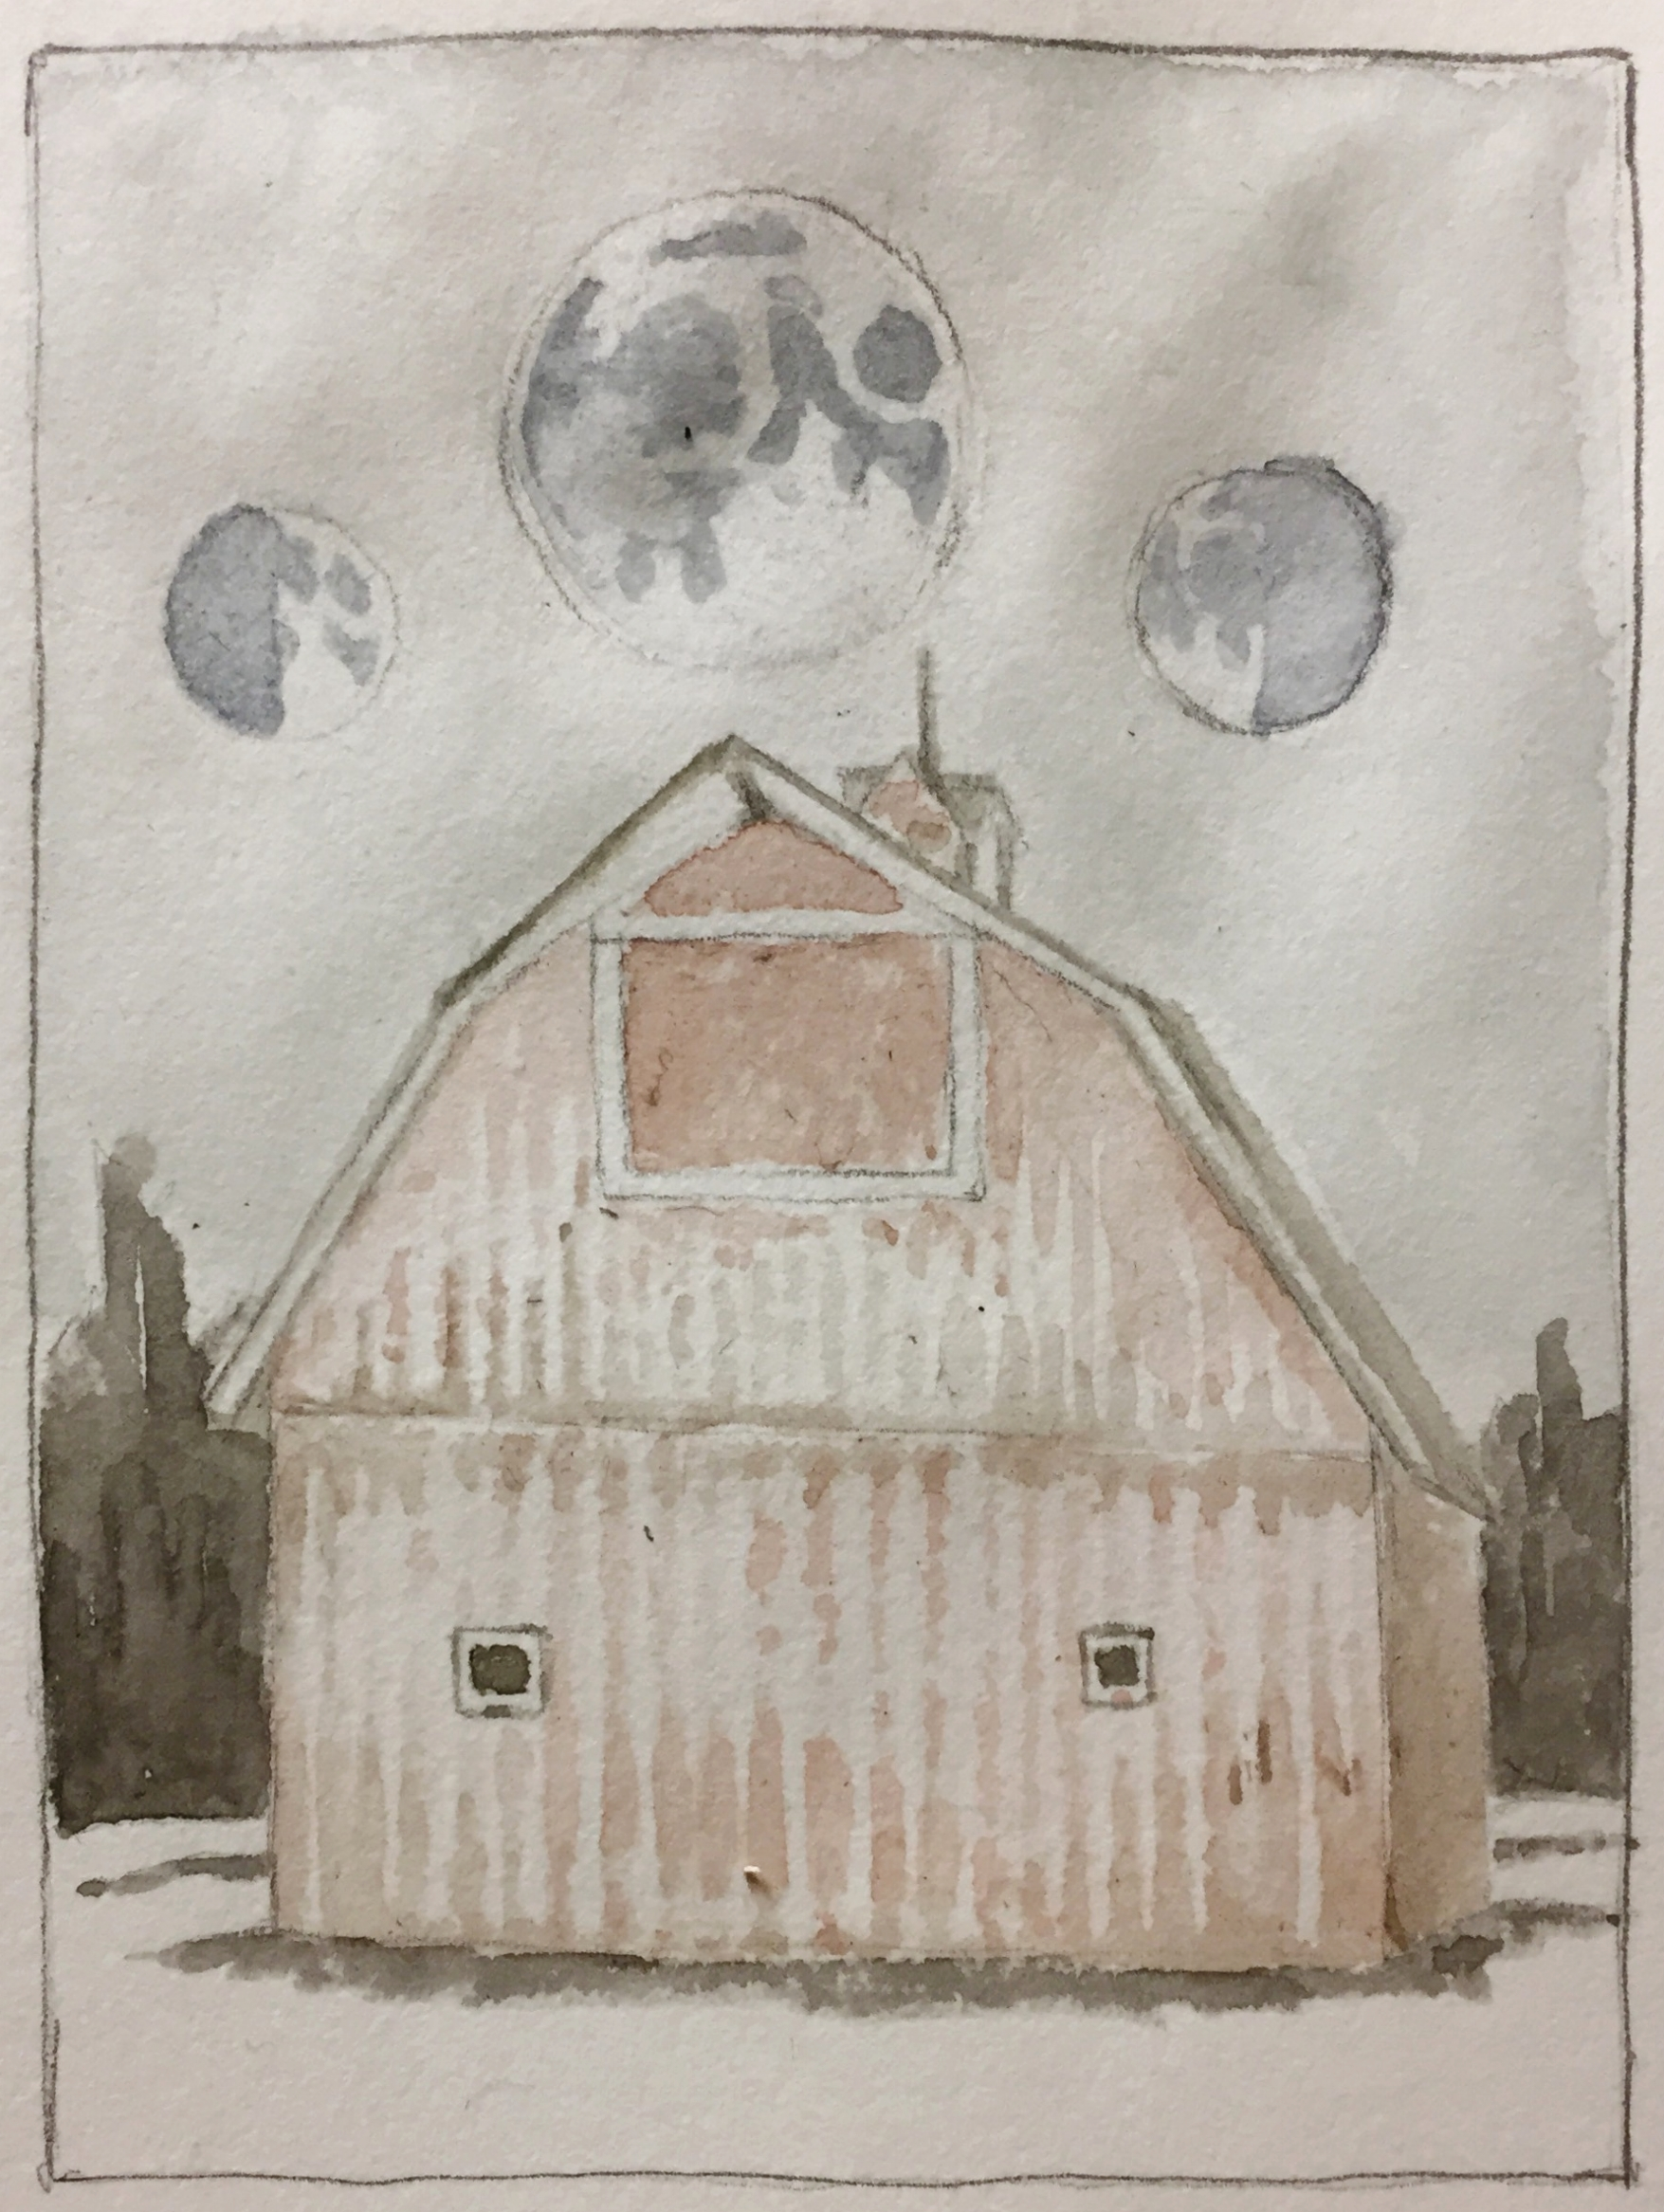 2017 Midwest Barn Series Sketch by artist Laura Jewell